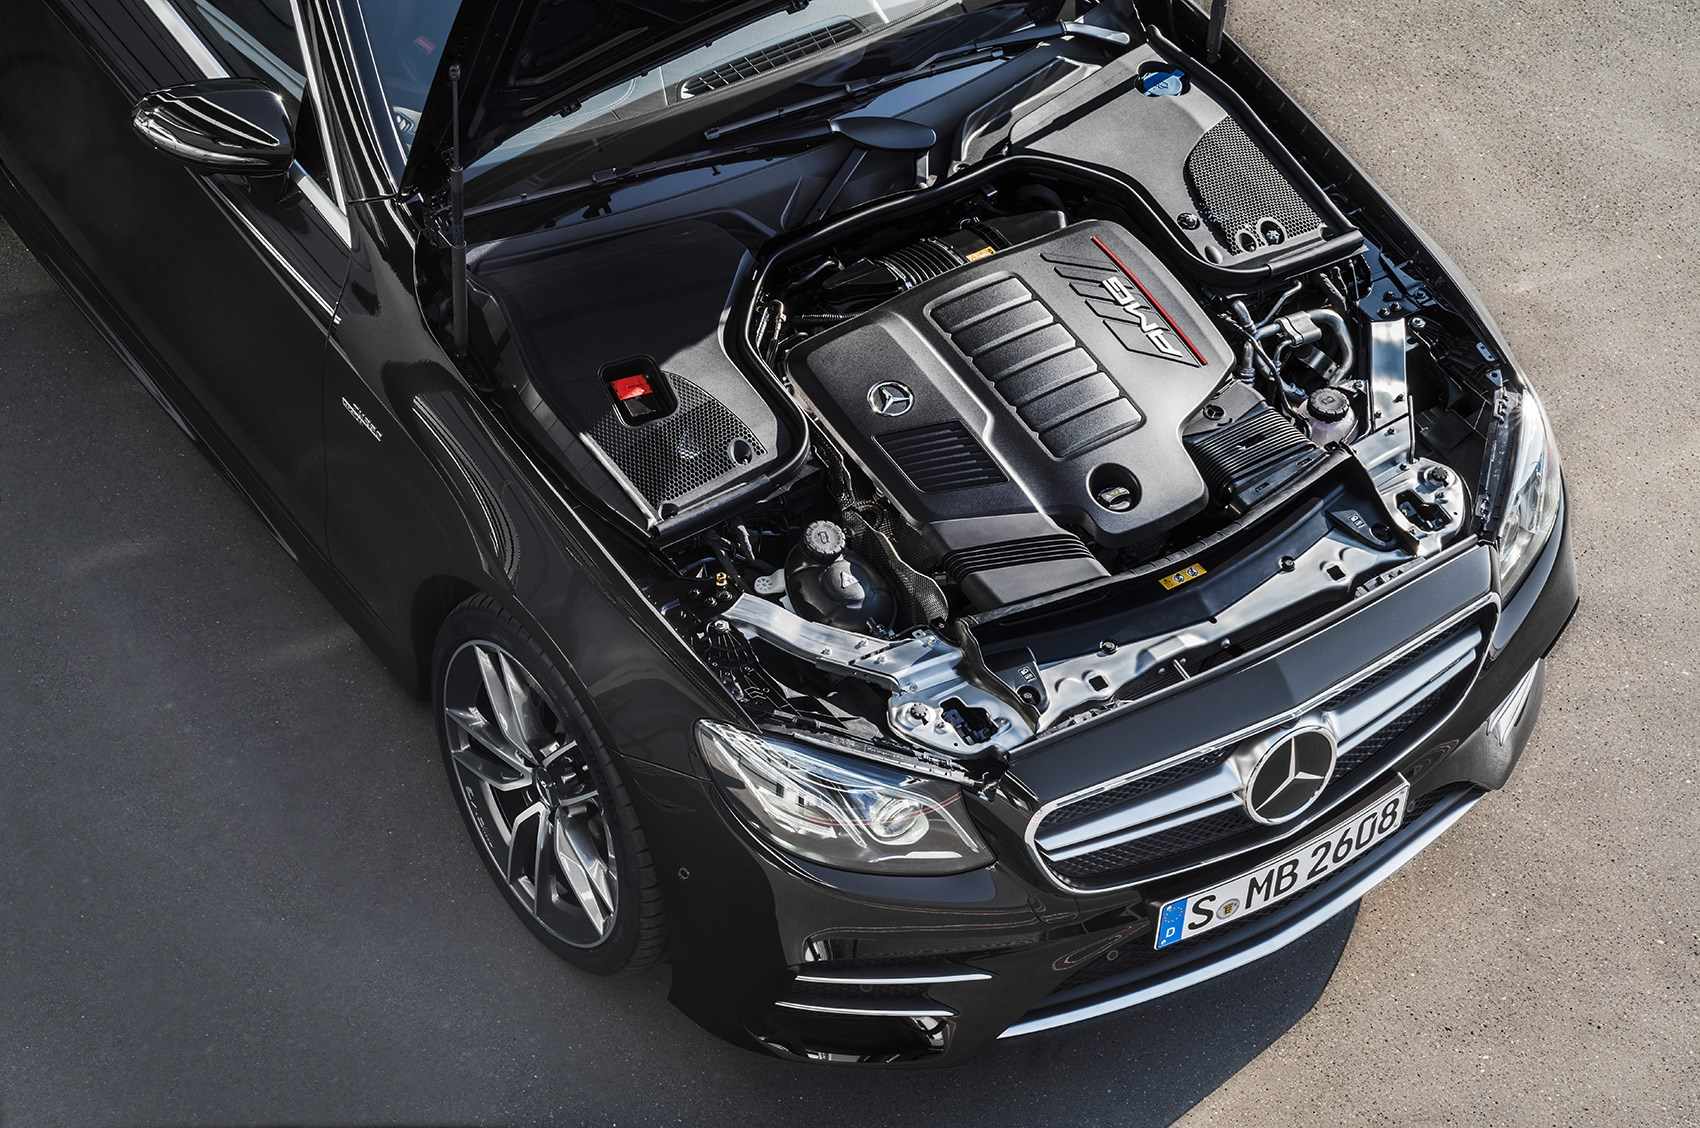 Mild Hybrids And Eq Boost For The New 53 Series Of Mercedes Amg Models